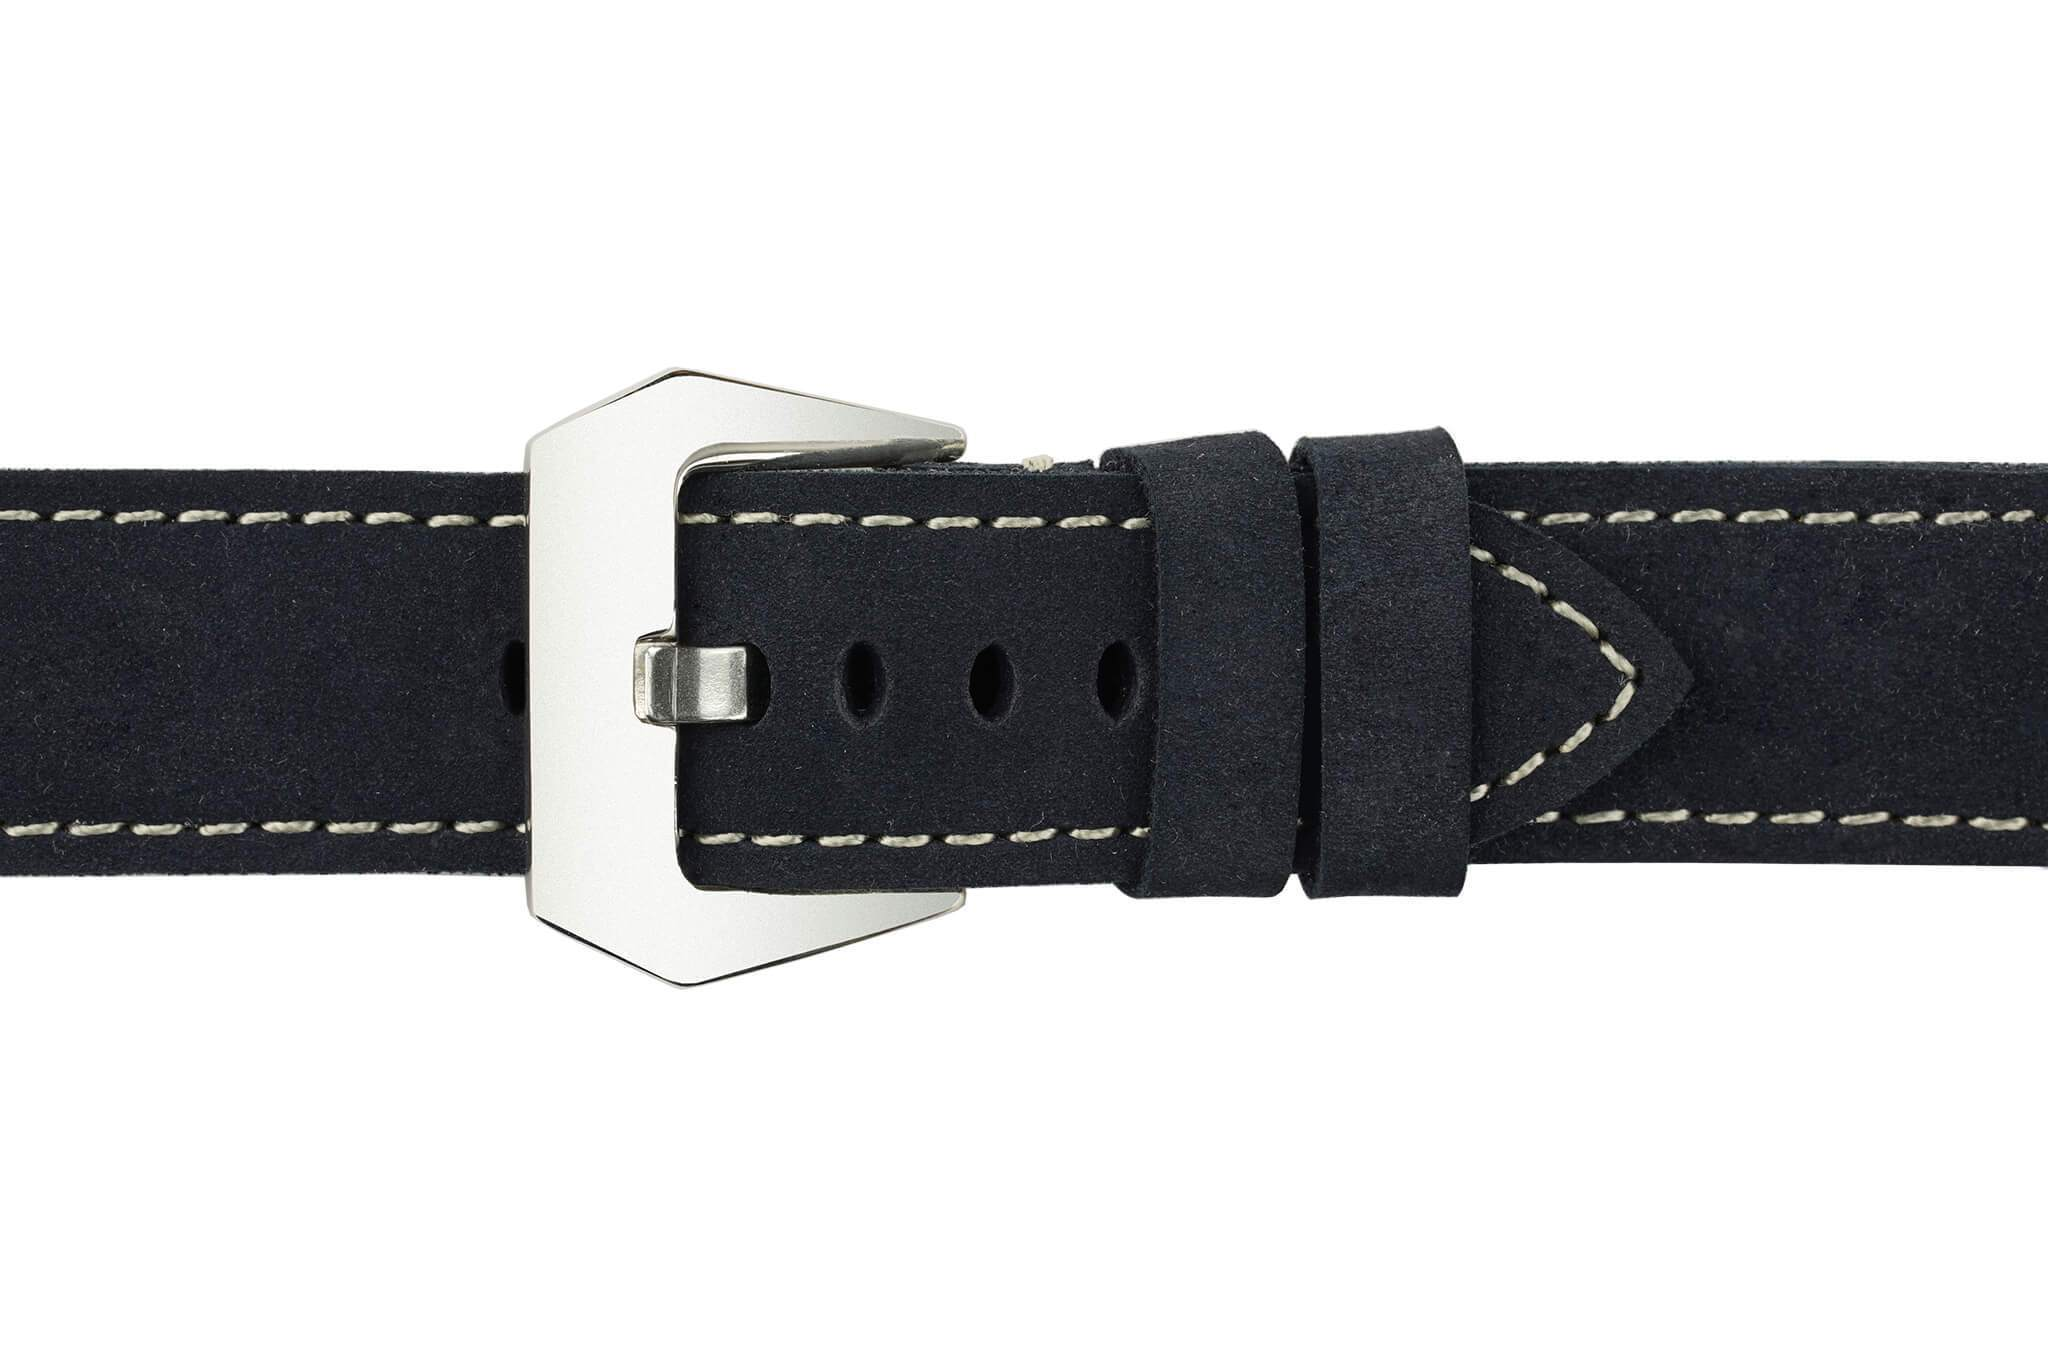 Watch Straps - 22mm Prussian Blue Leather Watch Strap (Soft Leather)